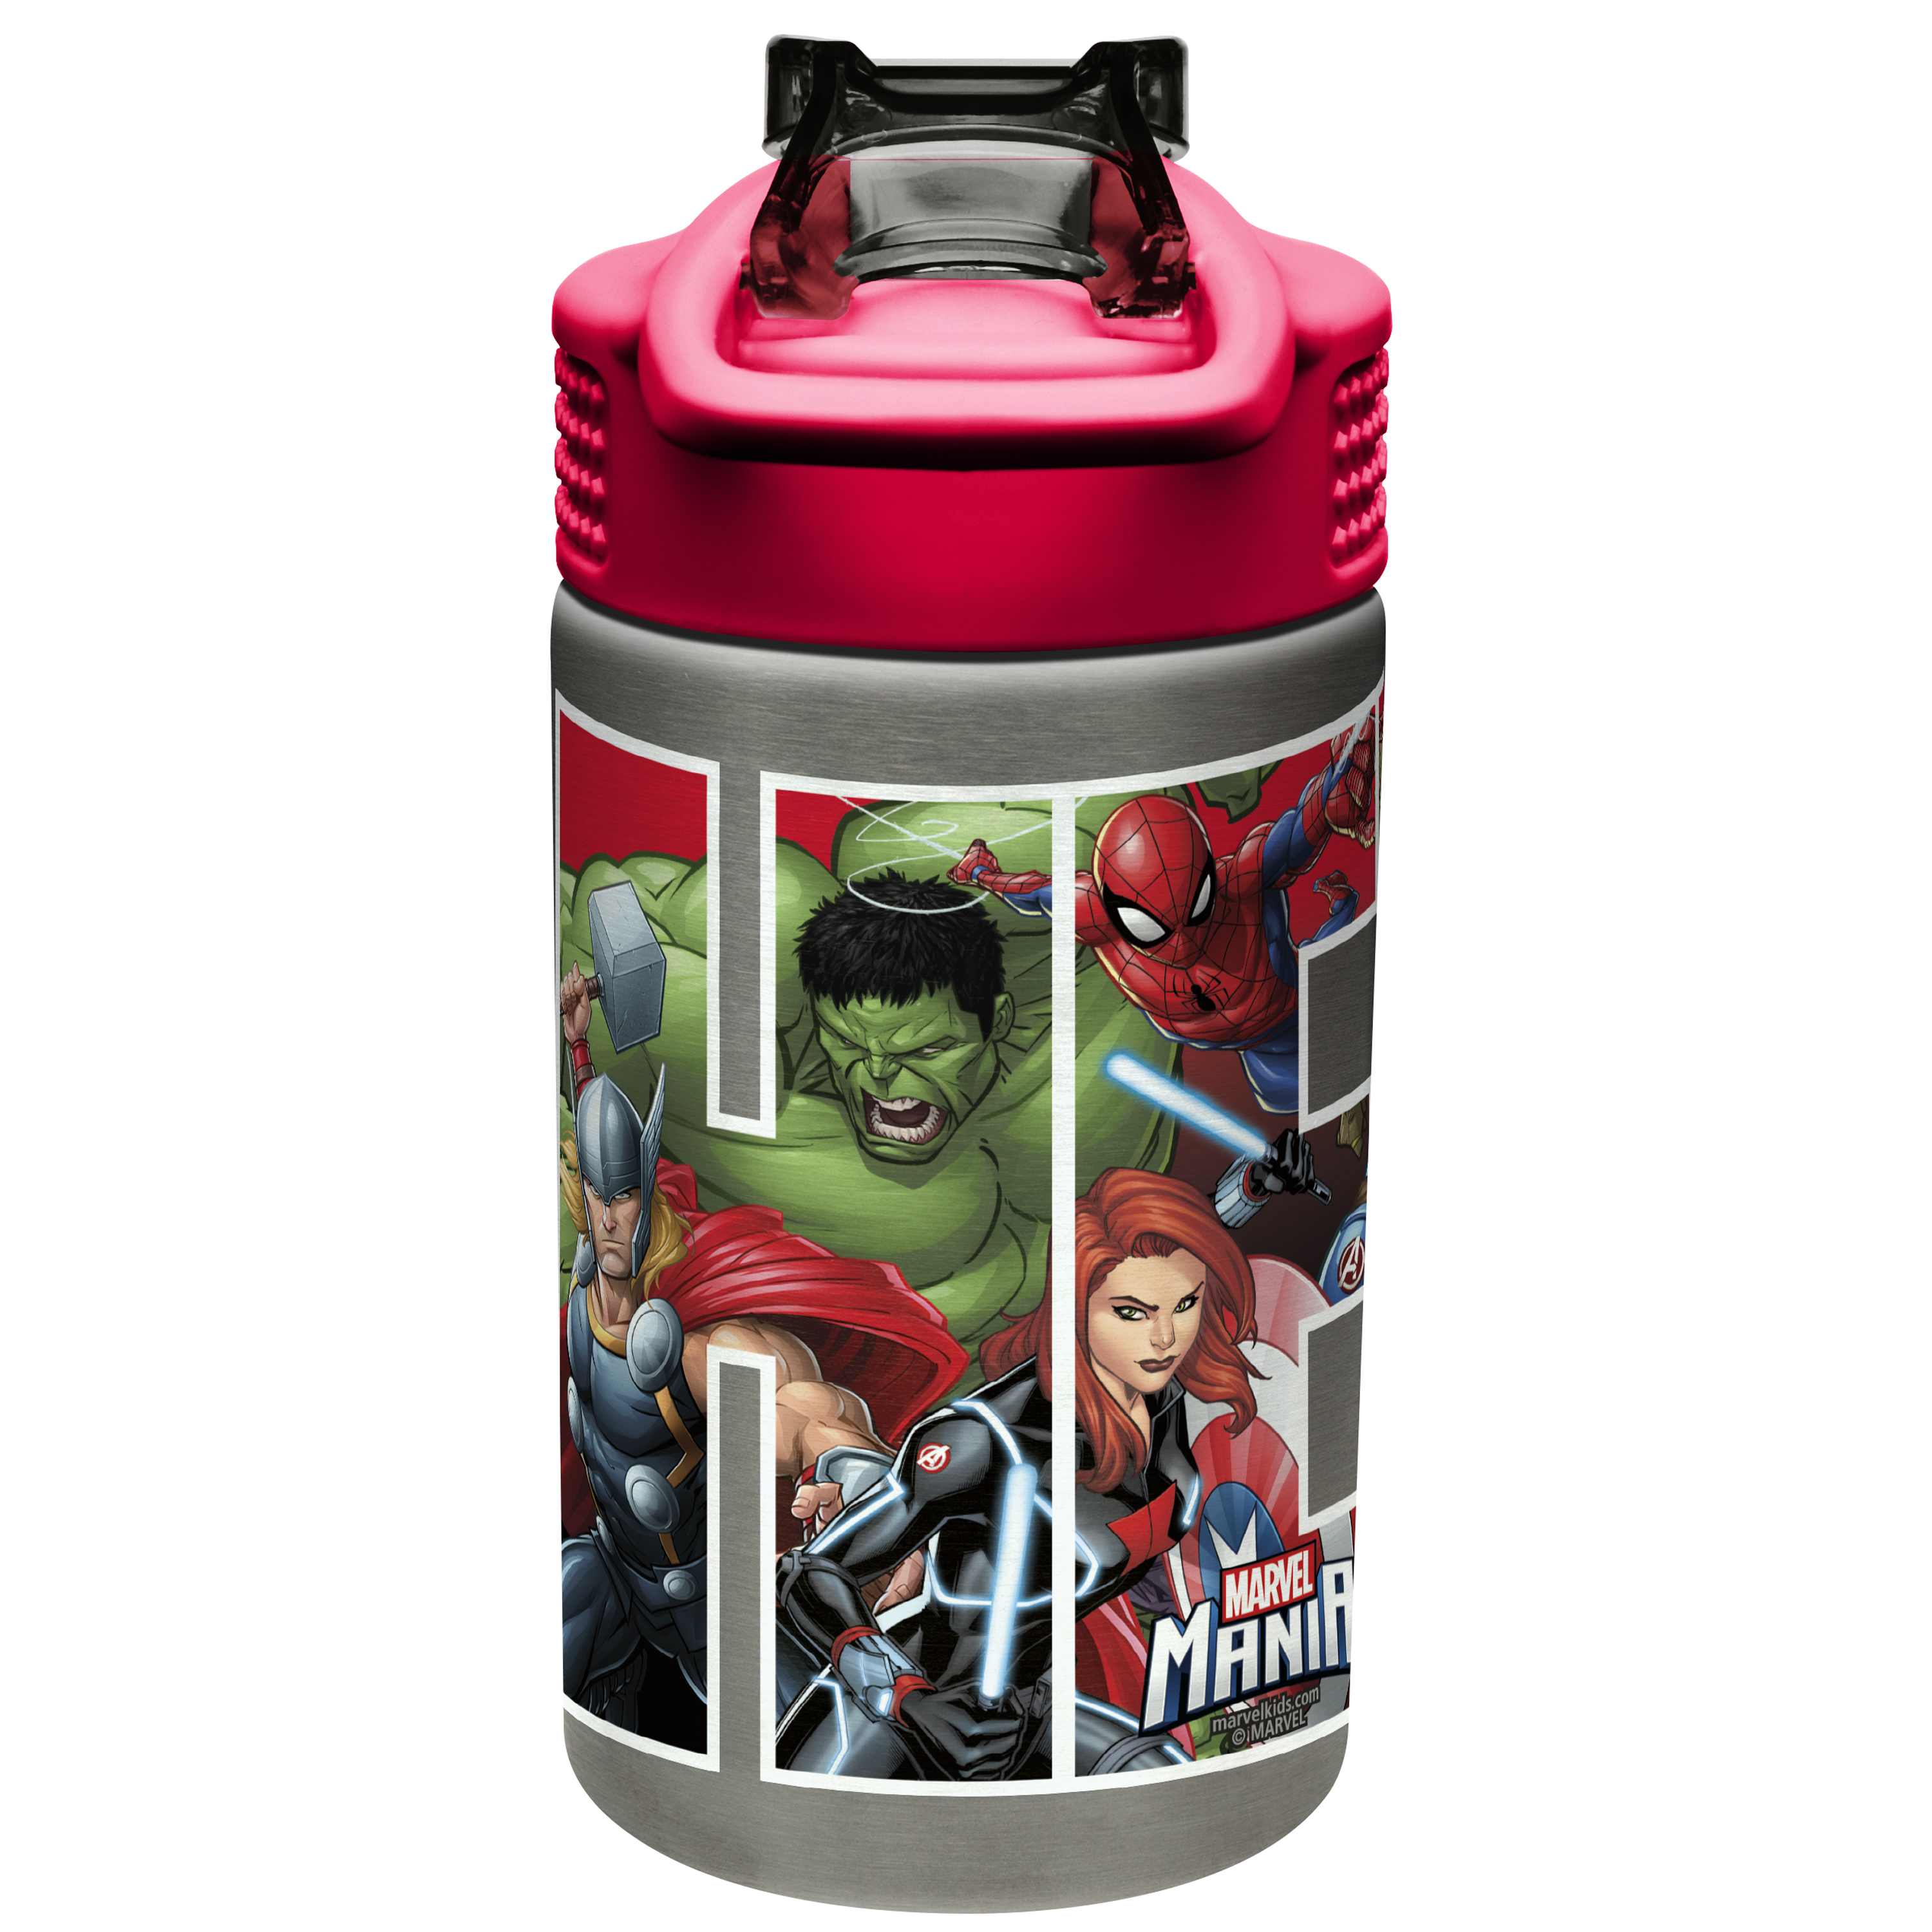 Marvel Comics 15.5 ounce Water Bottle, Black Panther, Captain America, Spider-Man & The Hulk slideshow image 5